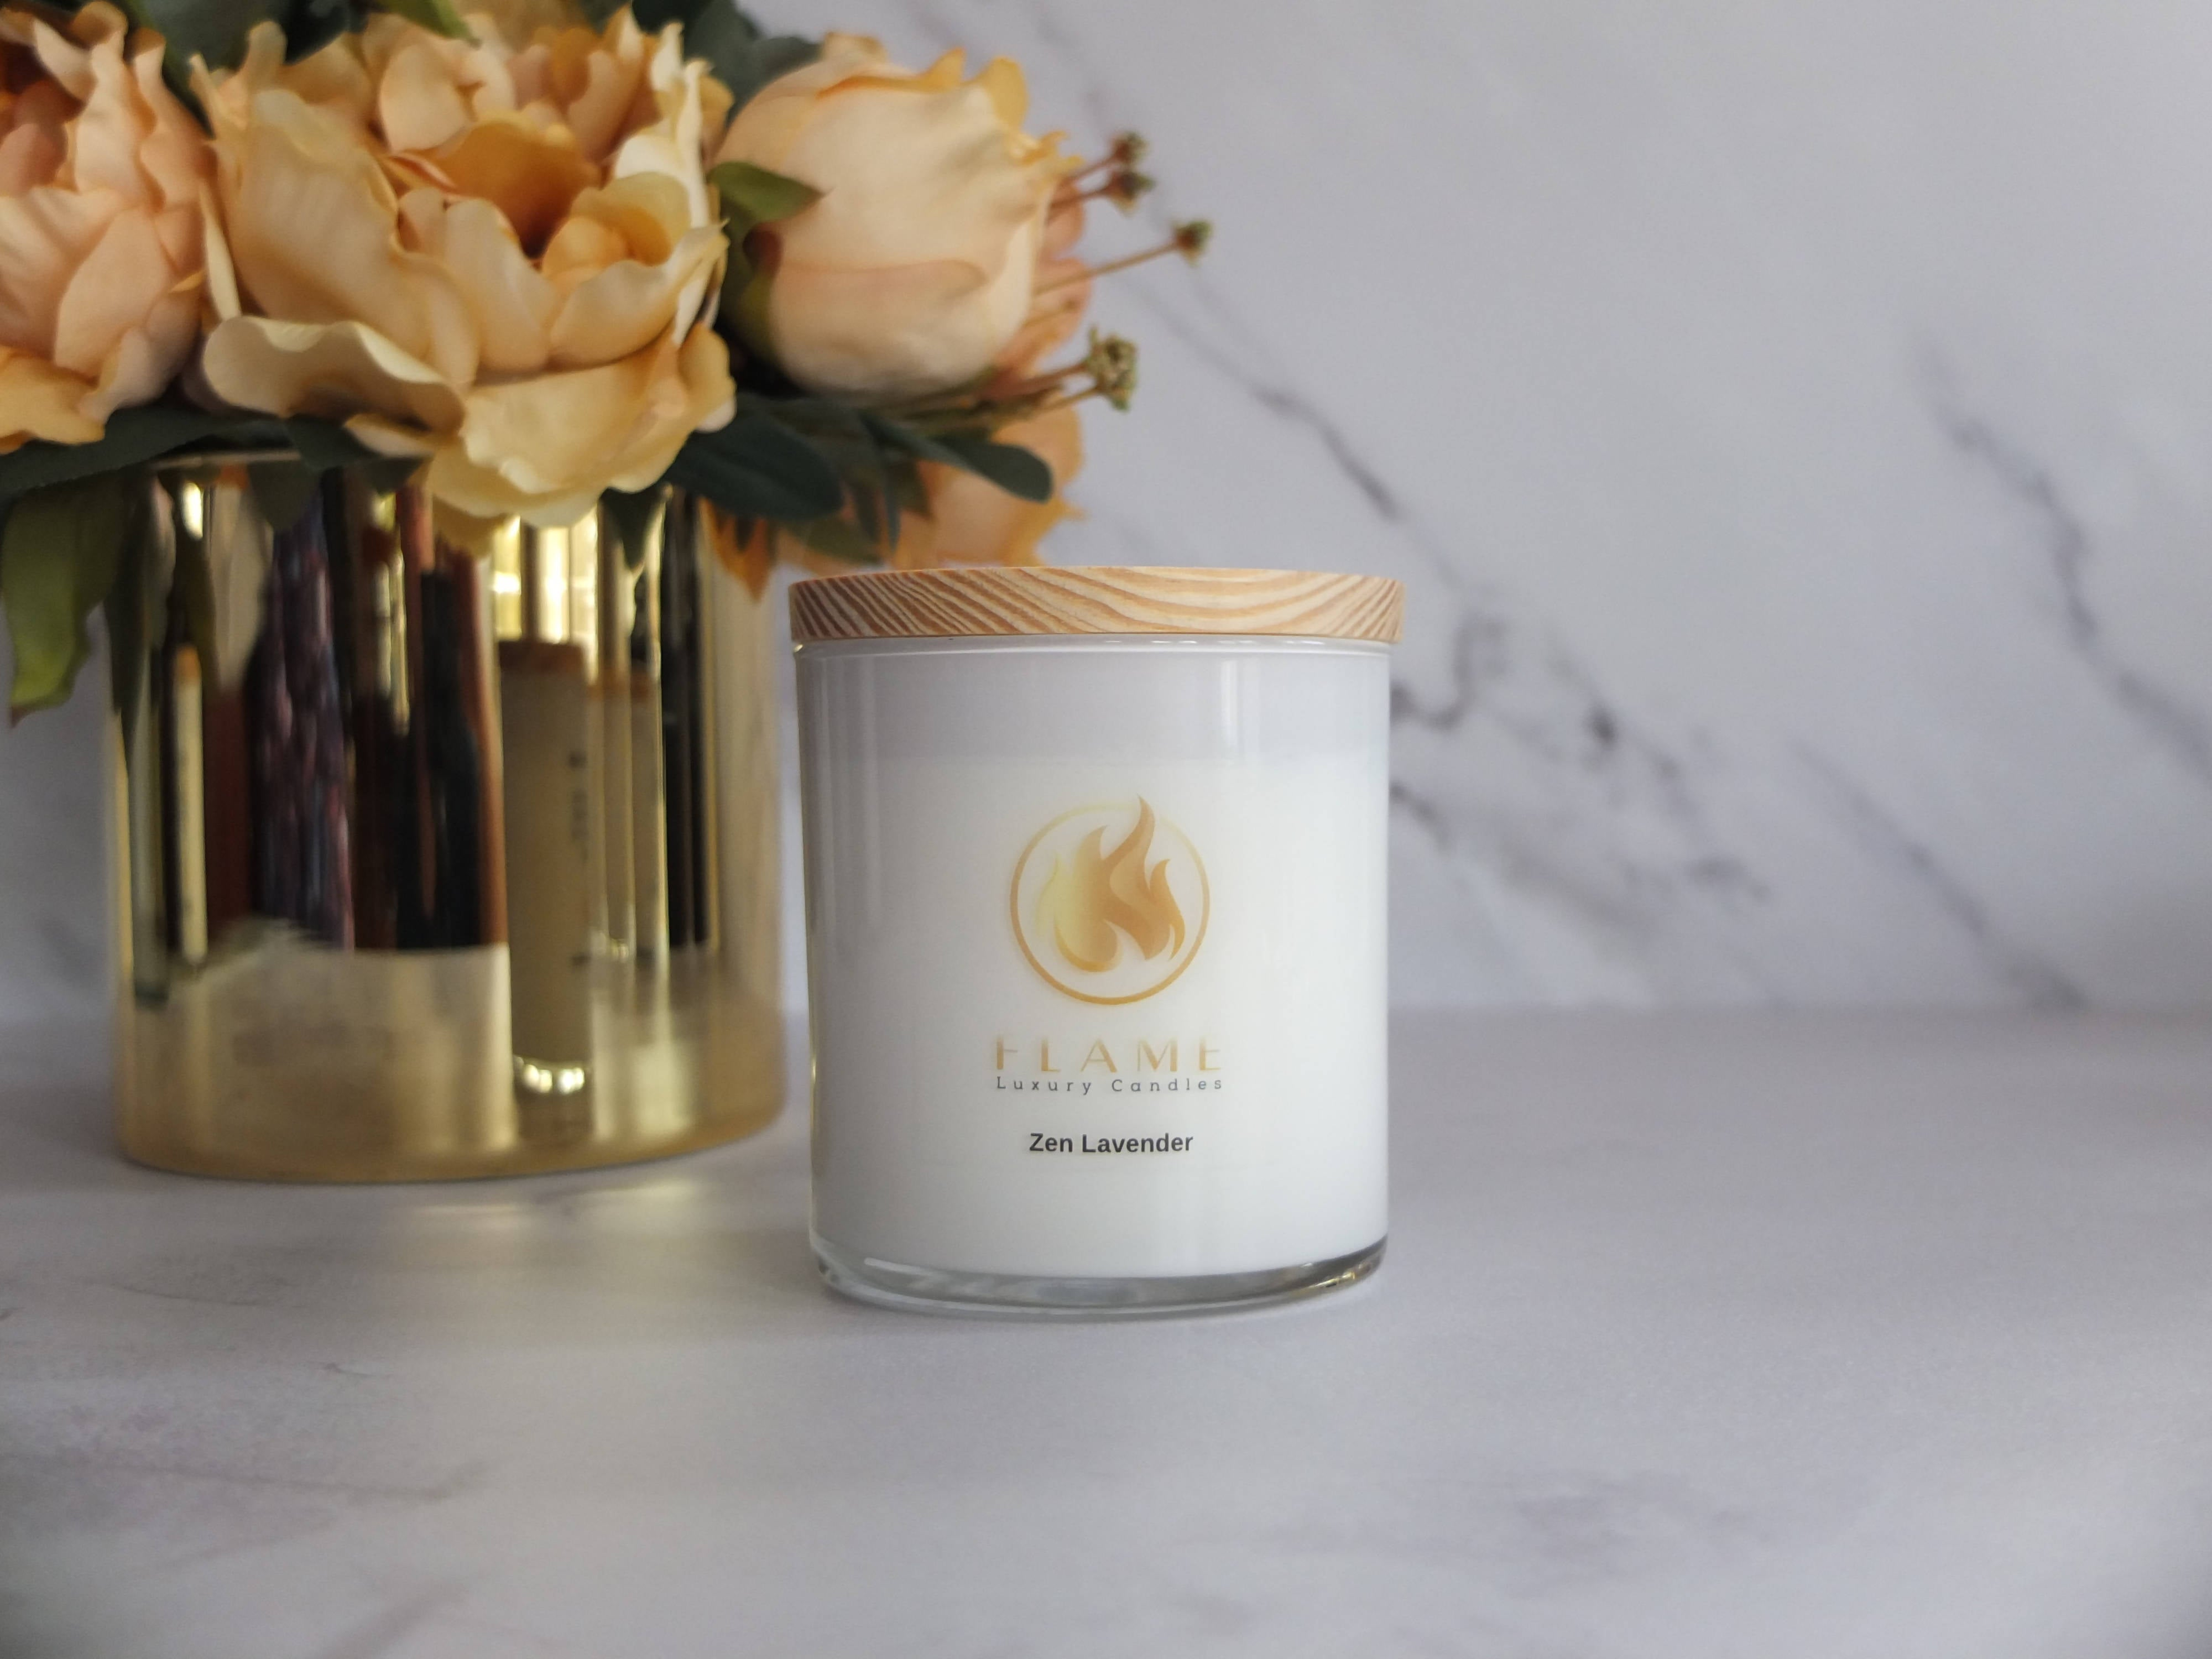 Luxe soy candle. 10 oz. Zen Lavender.